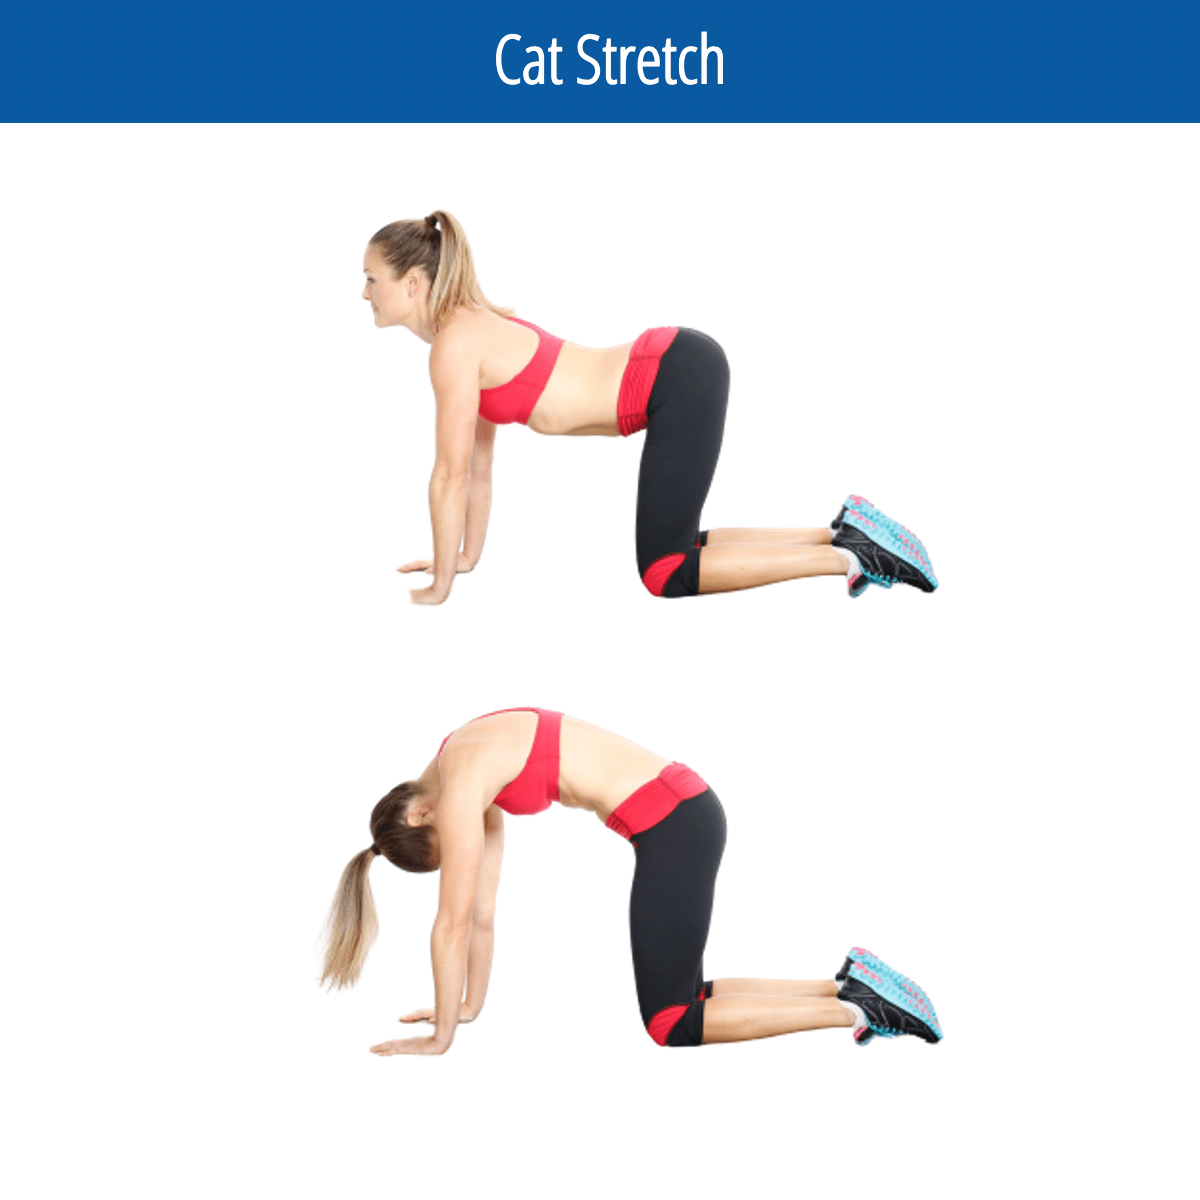 Cat Stretch Image